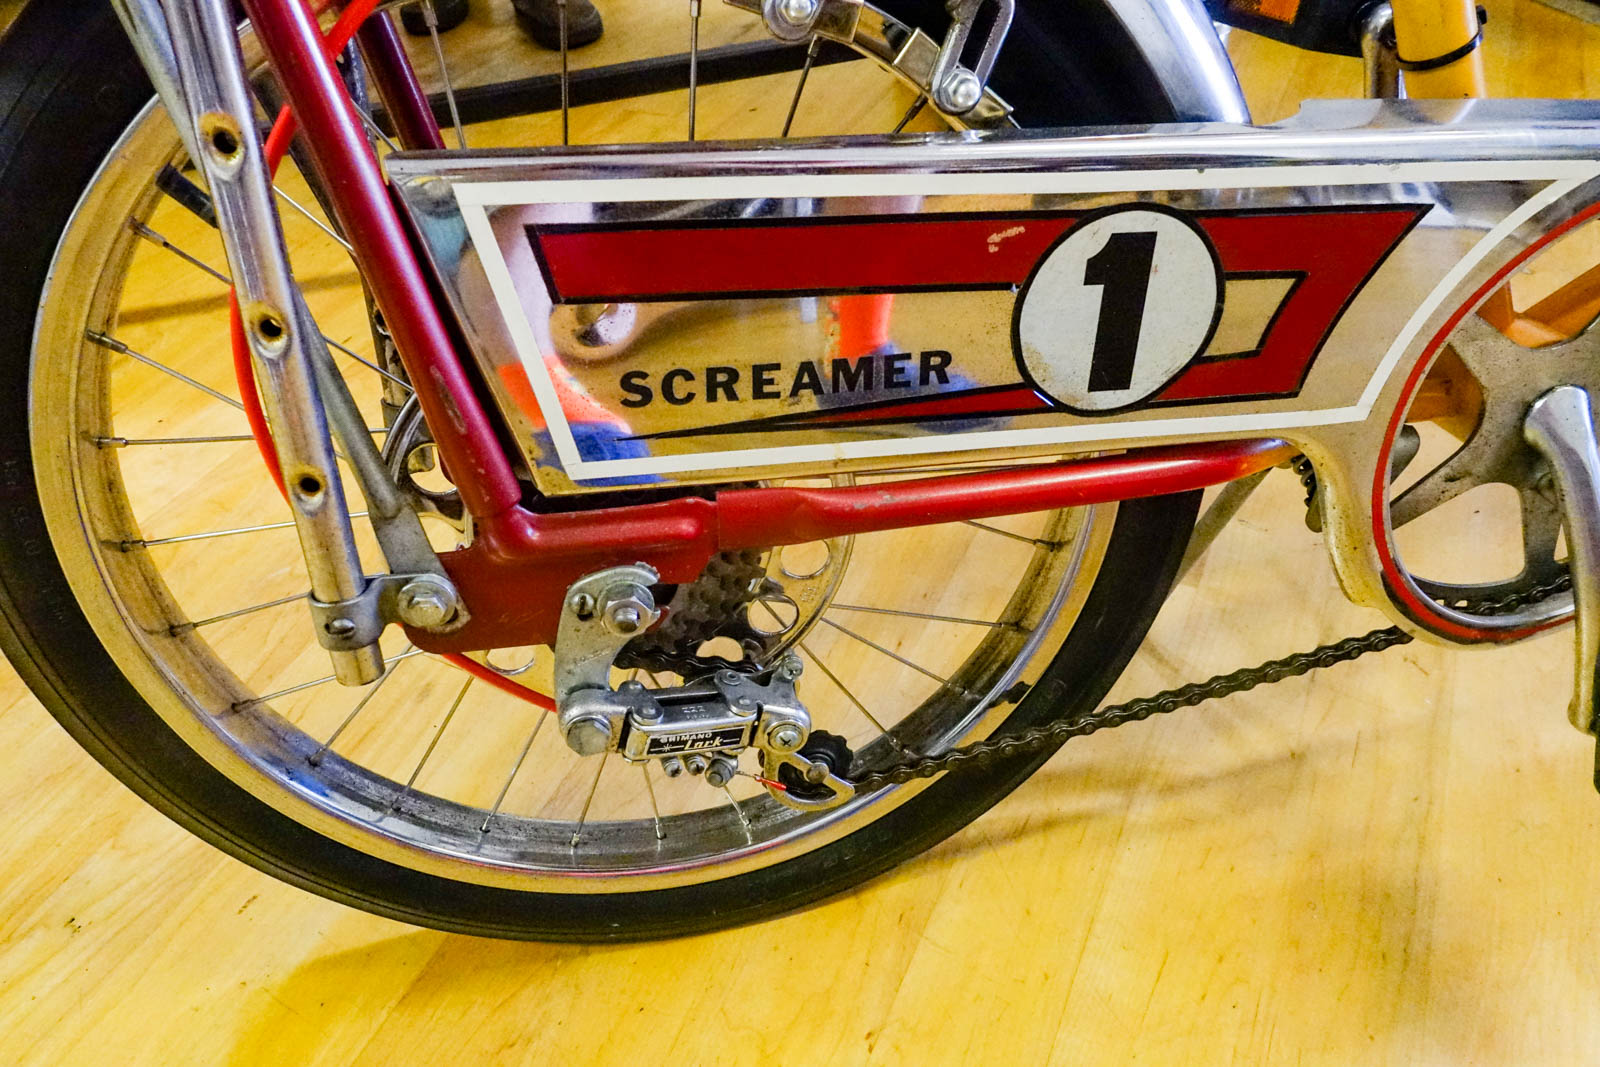 1970s Sears Roebuck Screamer 1 With Wicked Shifter Normalblog